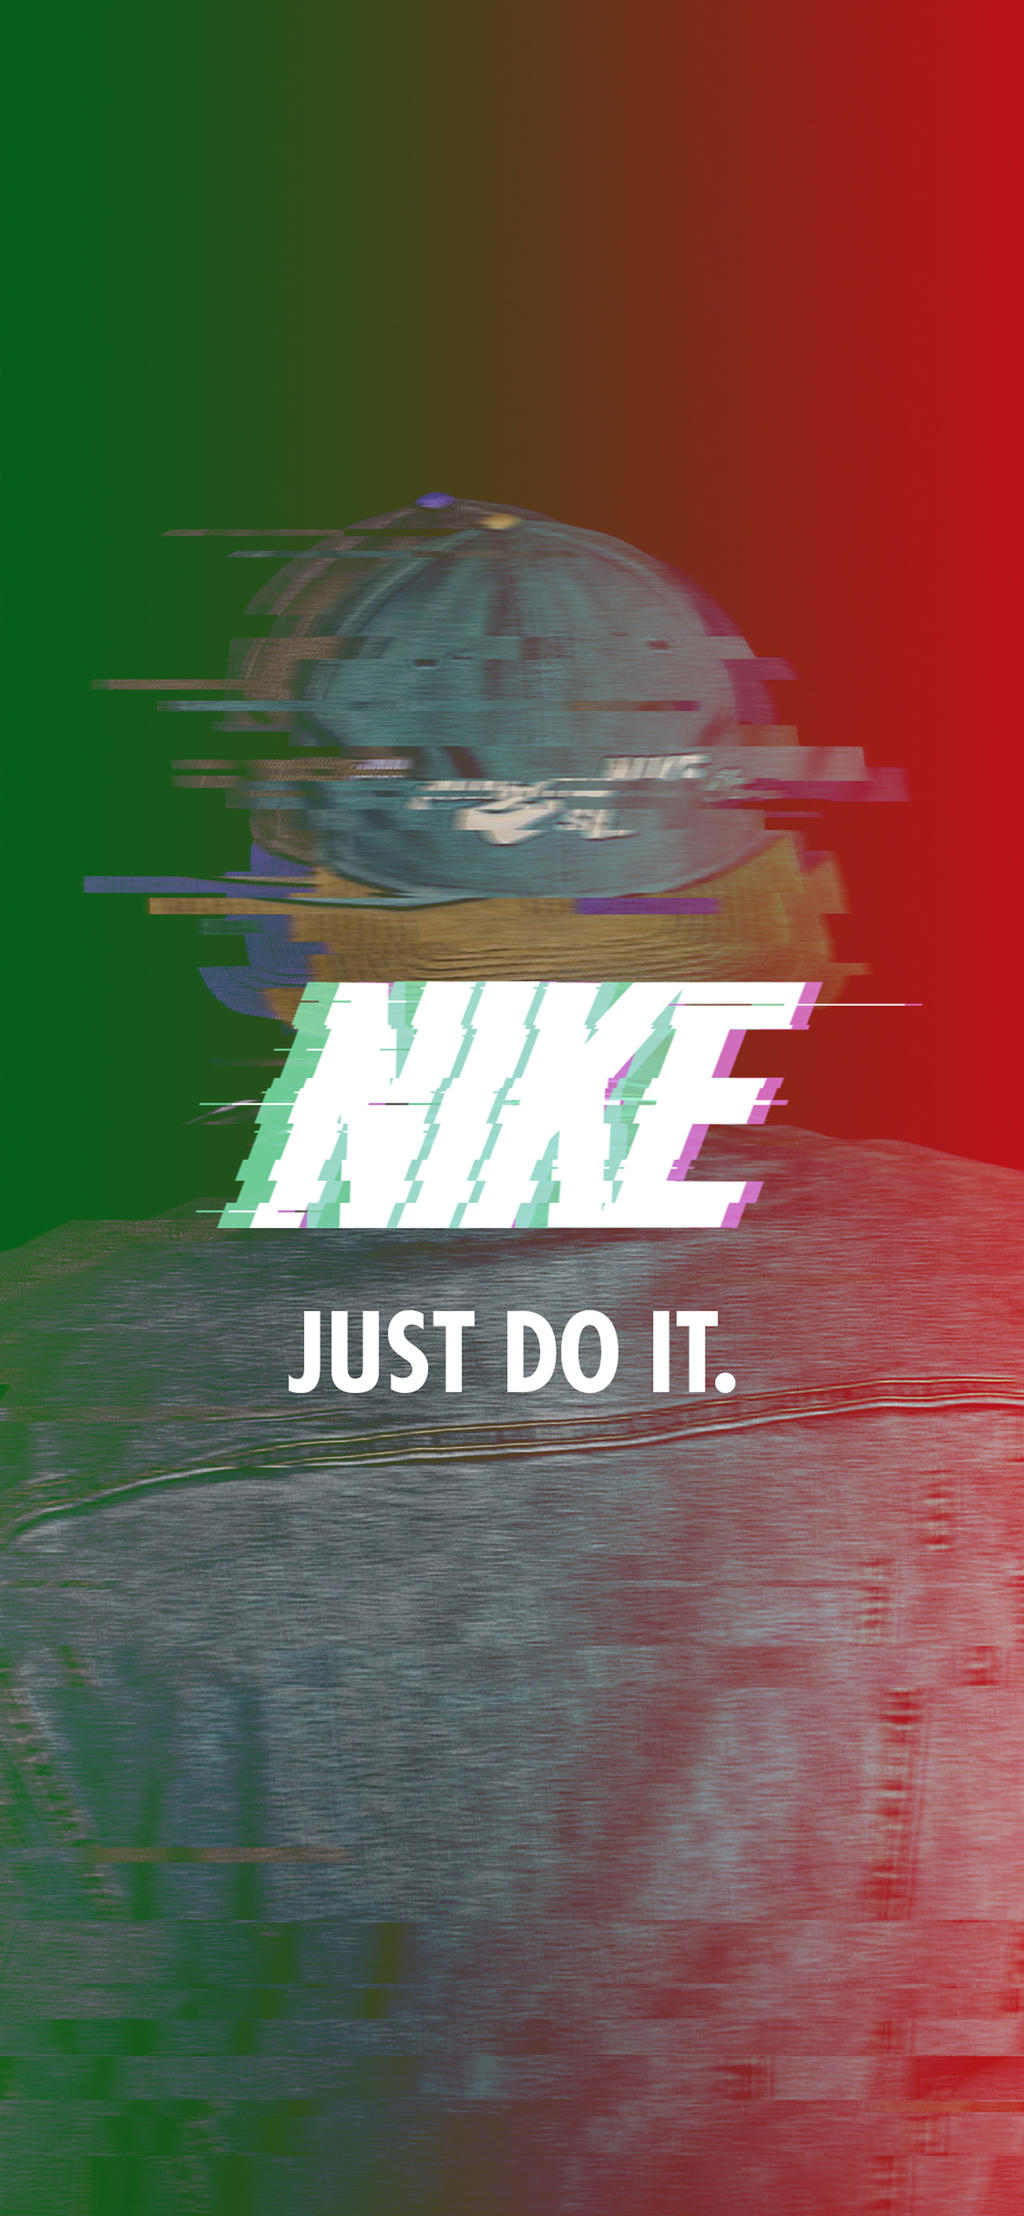 Nike Glitch Effect Wallpaper For Iphonex By Aminerdene On Deviantart